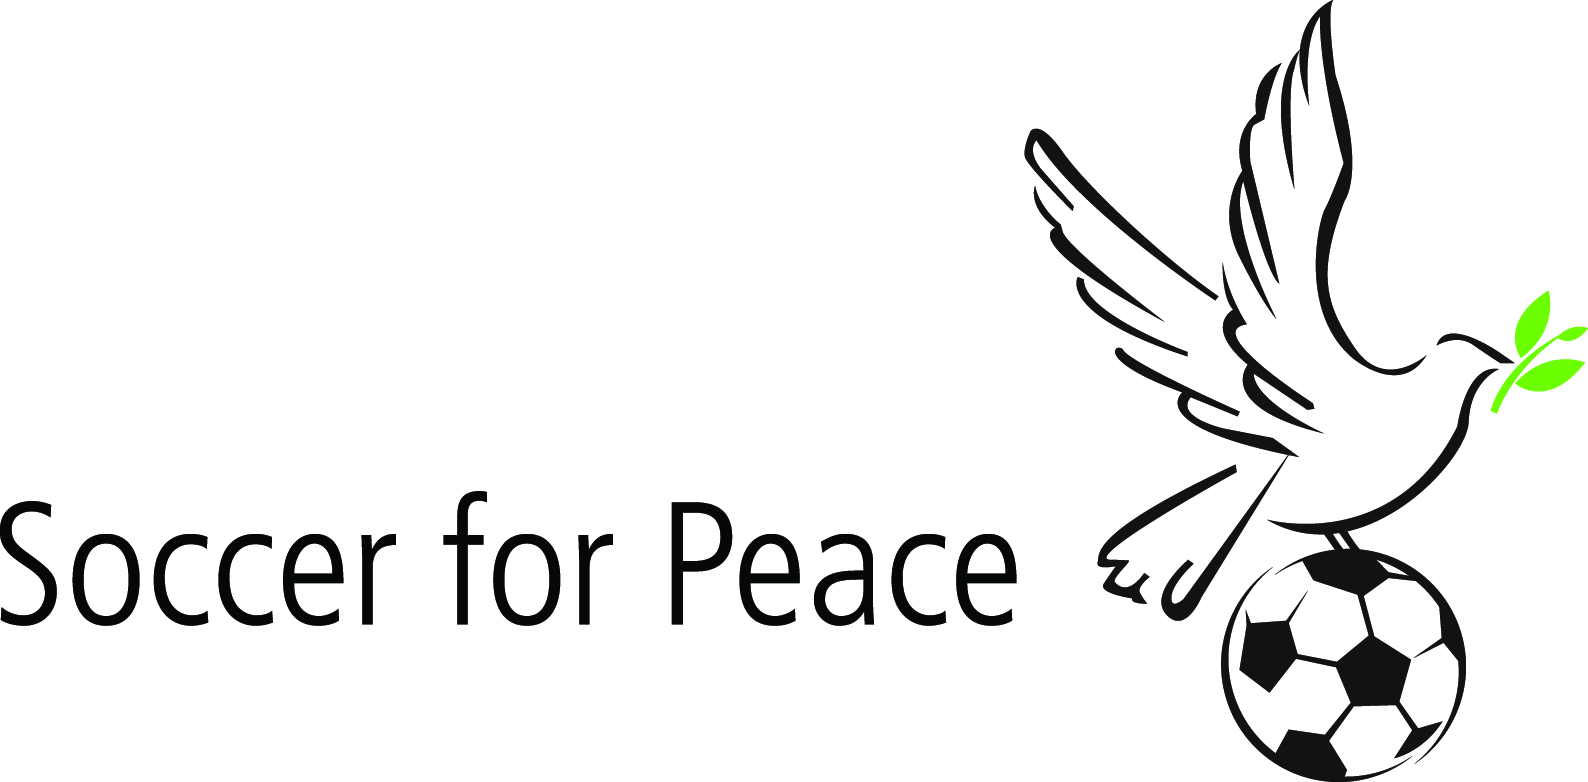 Soccer for Peace